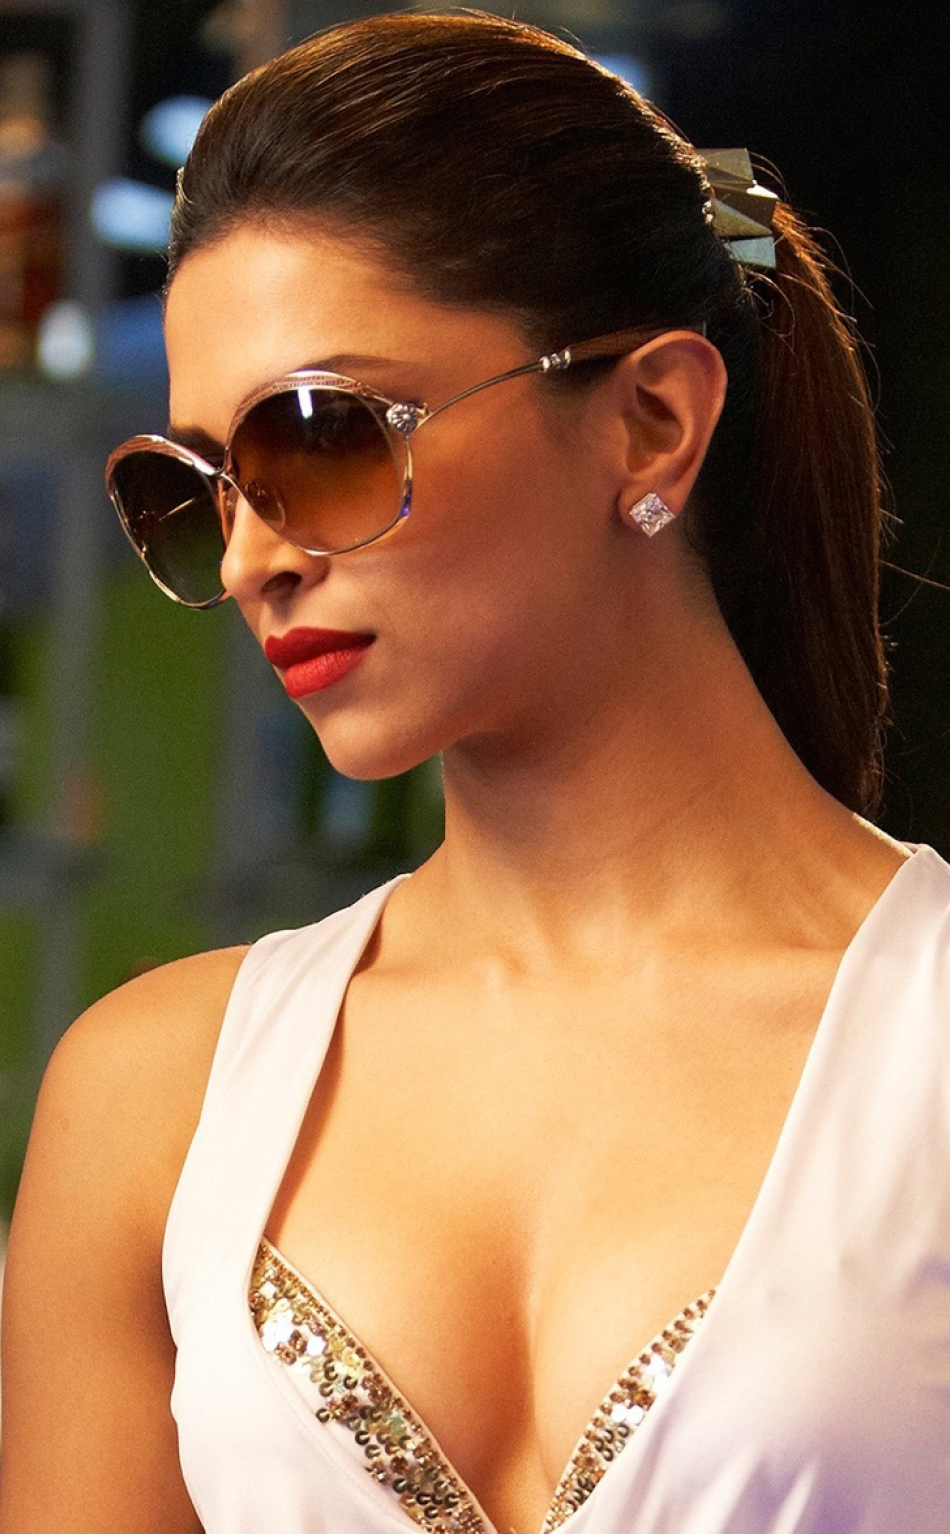 Deepika Padukone In Race2, Full HD Wallpaper